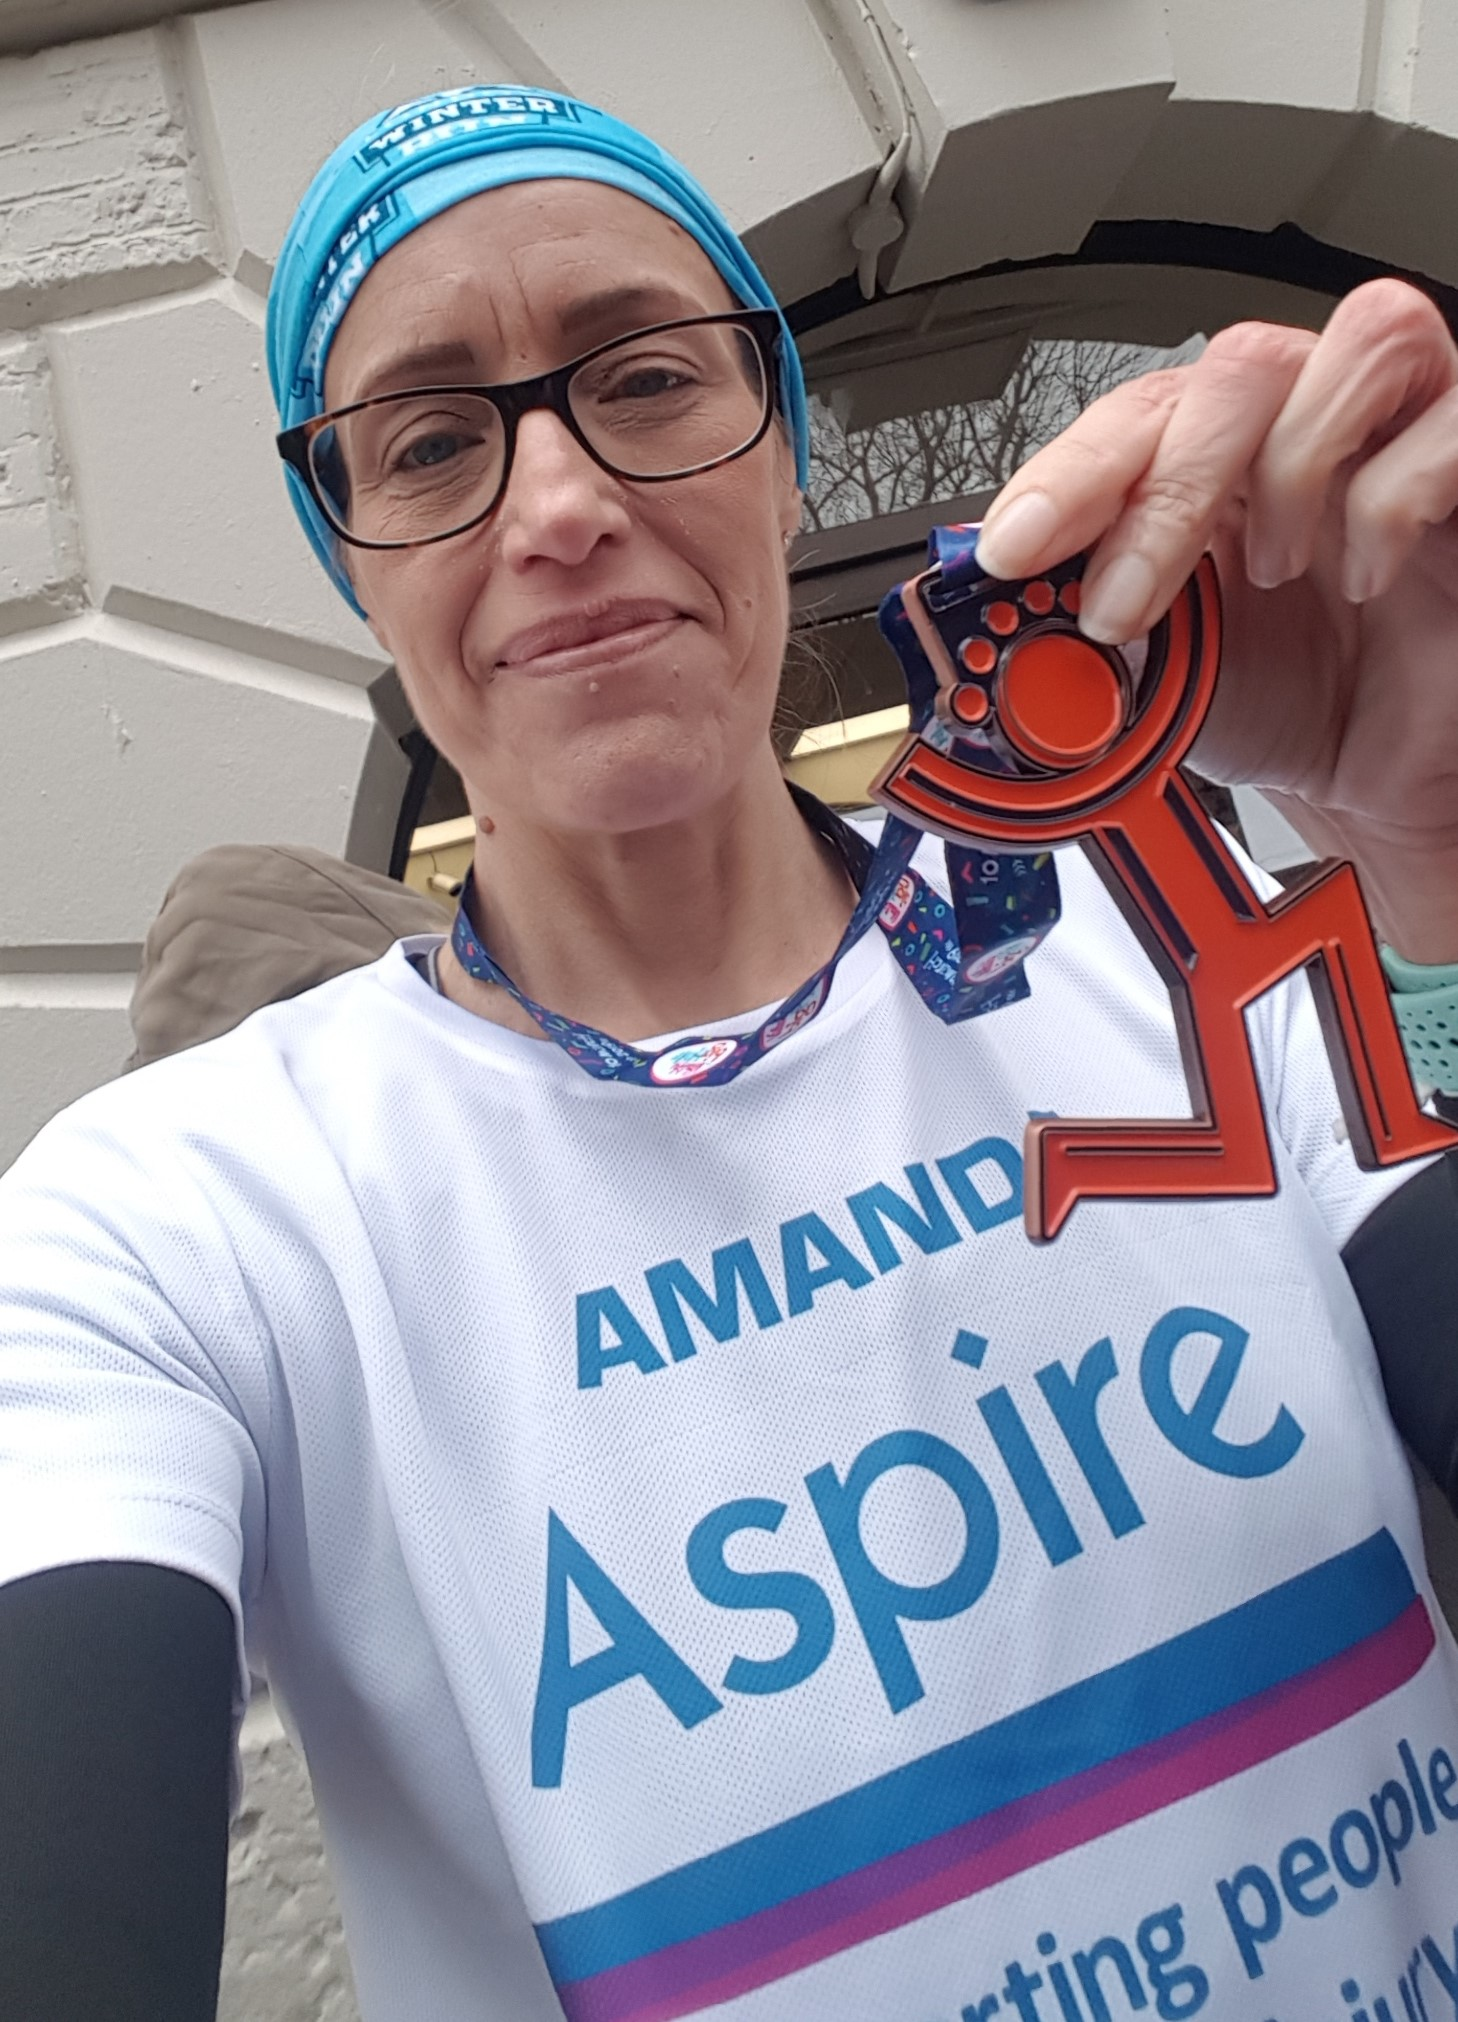 Amanda in Aspire t-shirt with medal